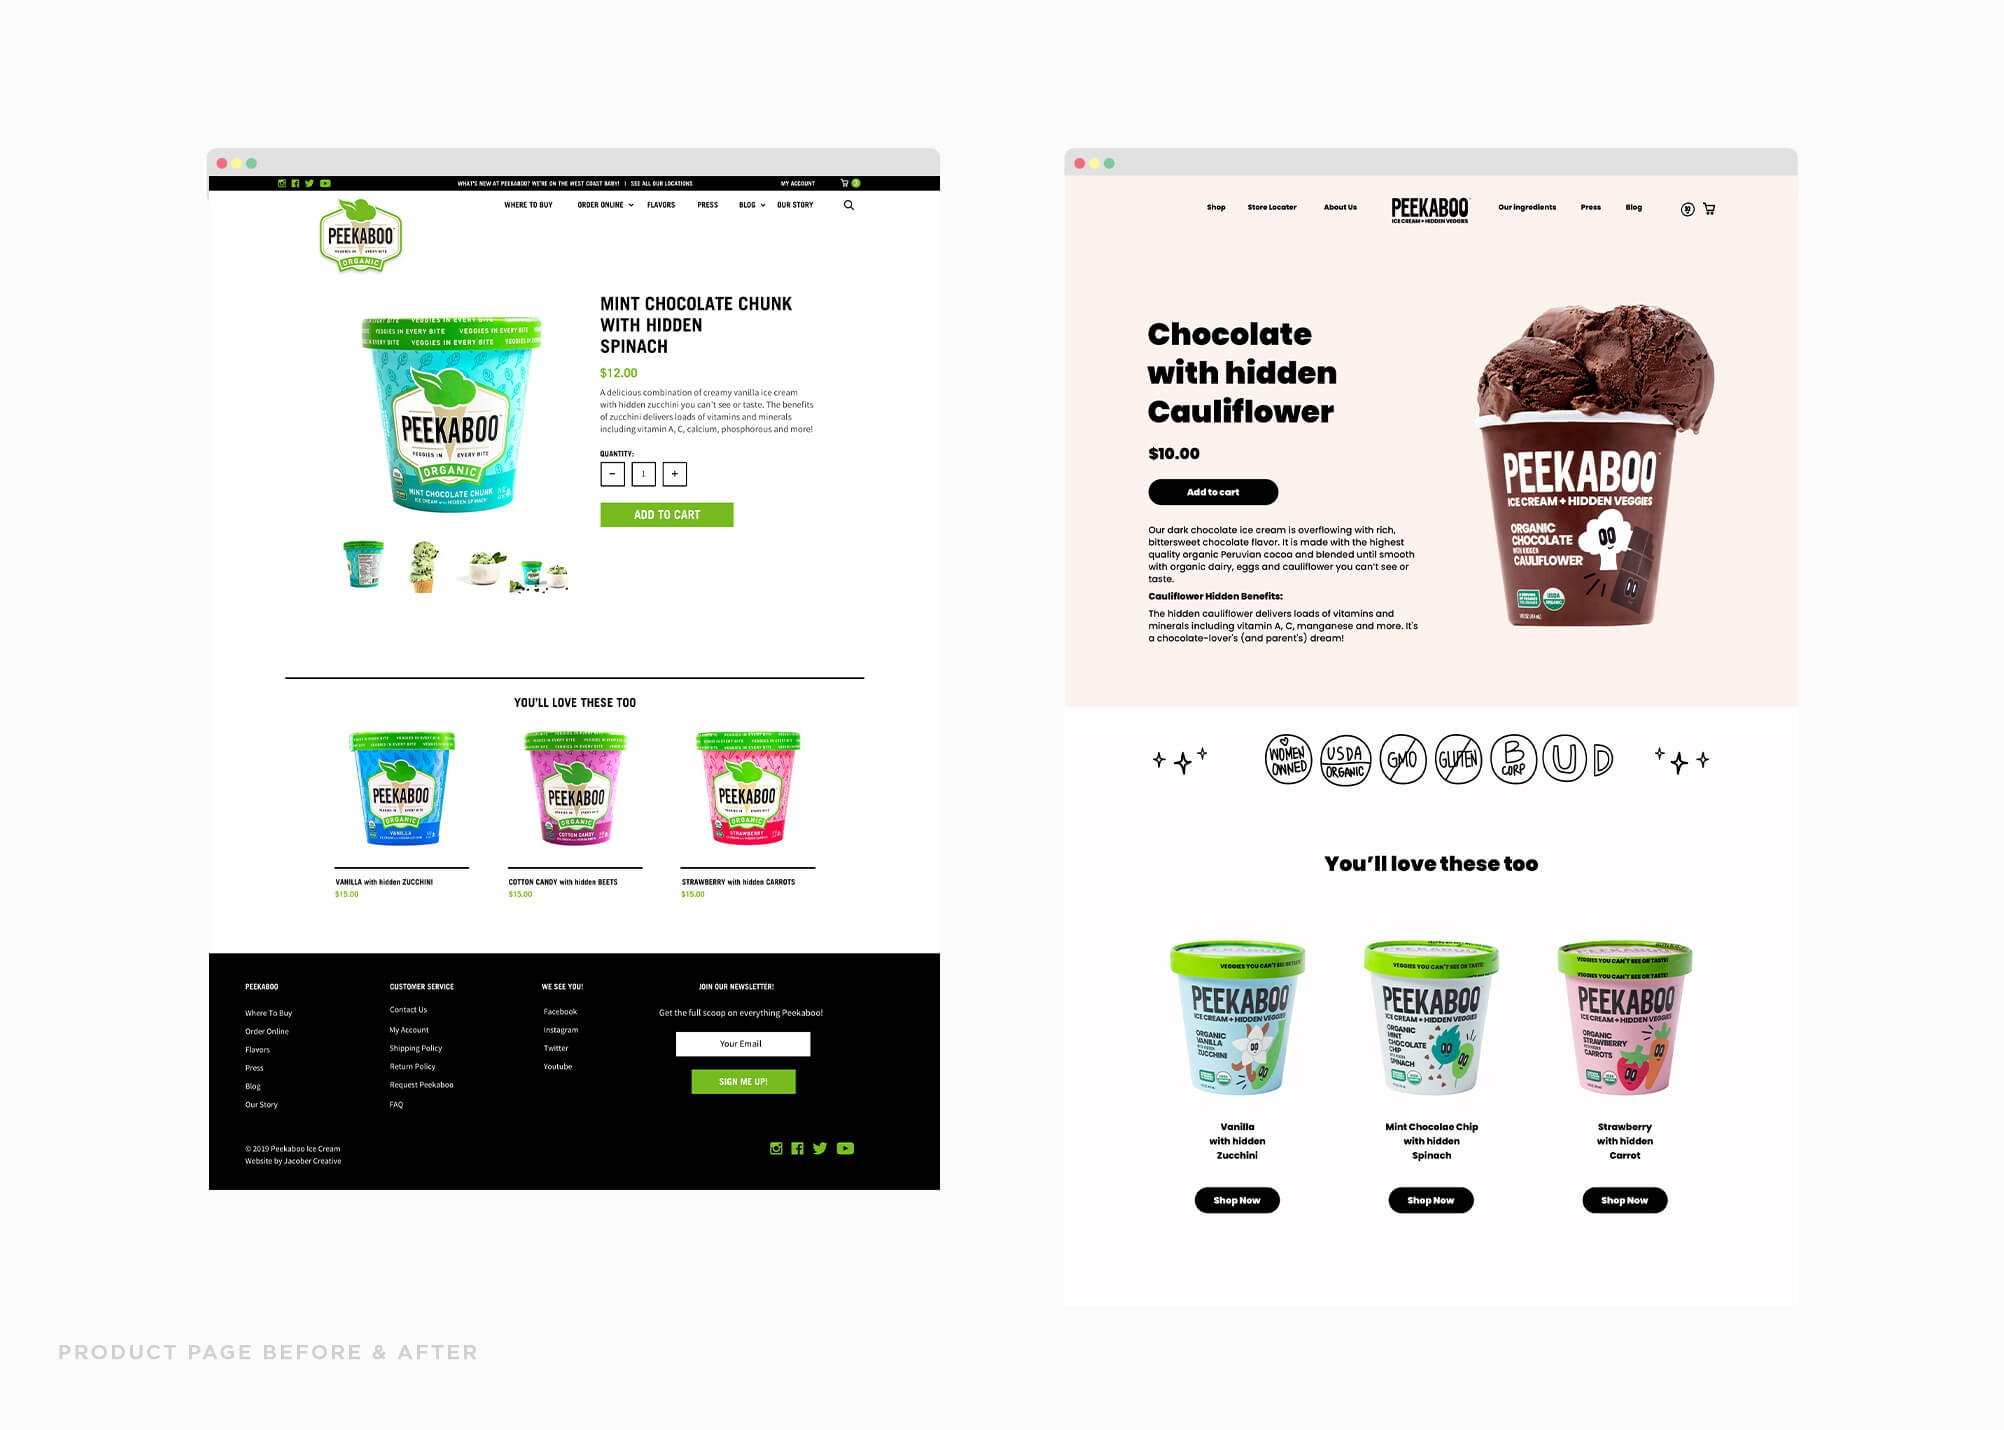 Jacober rebranding of Peekaboo Ice Cream. Photo of new website design; before and after of product page